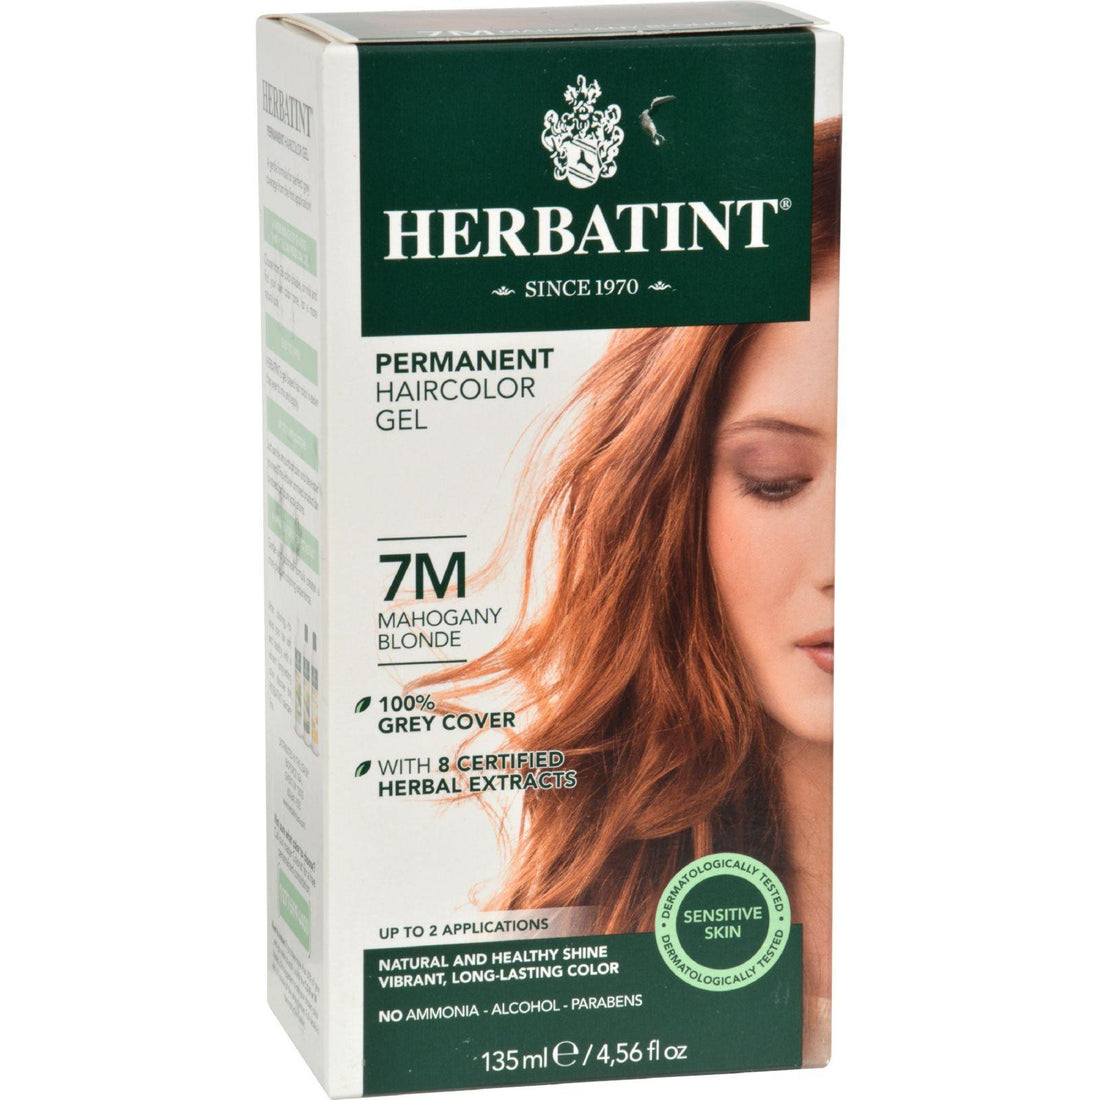 Mother Mantis: Herbatint Permanent Herbal Haircolour Gel 7m Mahogany Blonde - 135 Ml Herbatint